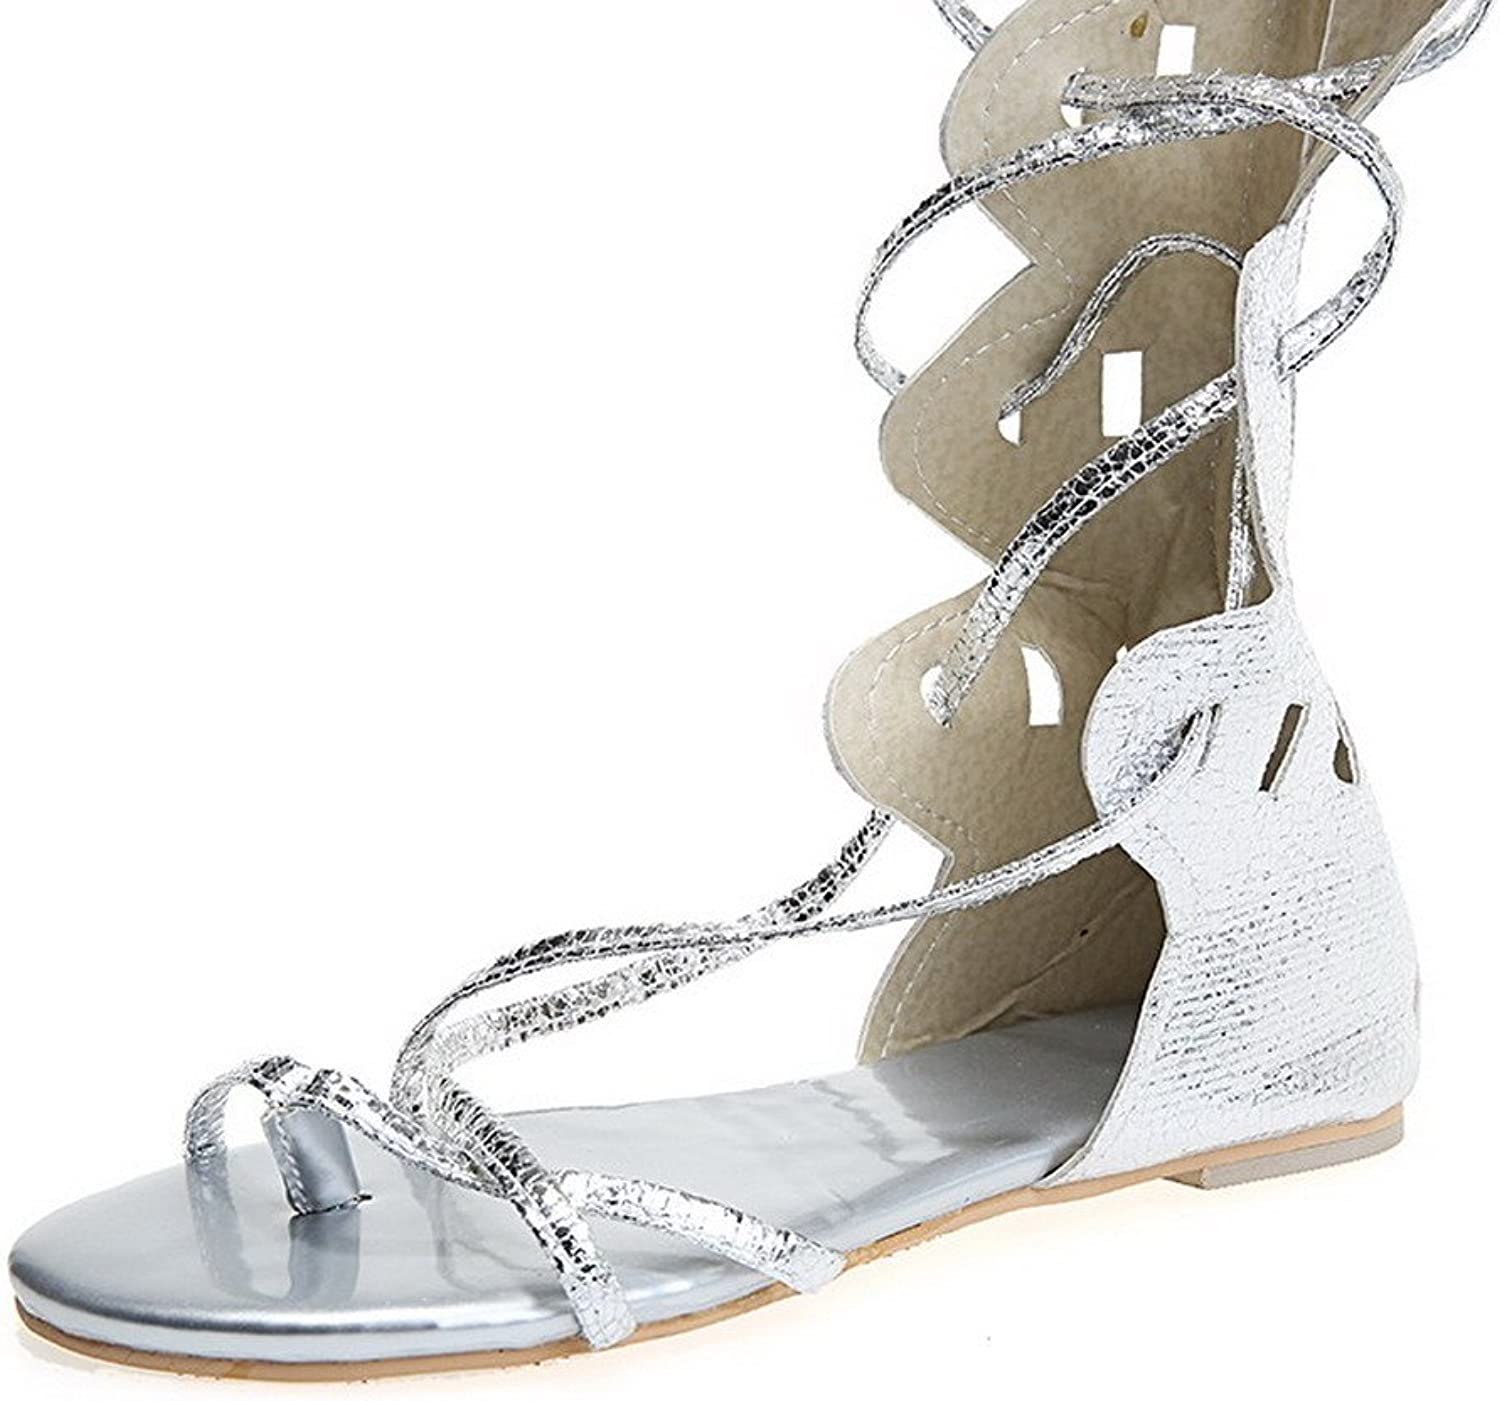 WeenFashion Women's Soft Material Lace Up Open Toe No Heel Solid Sandals